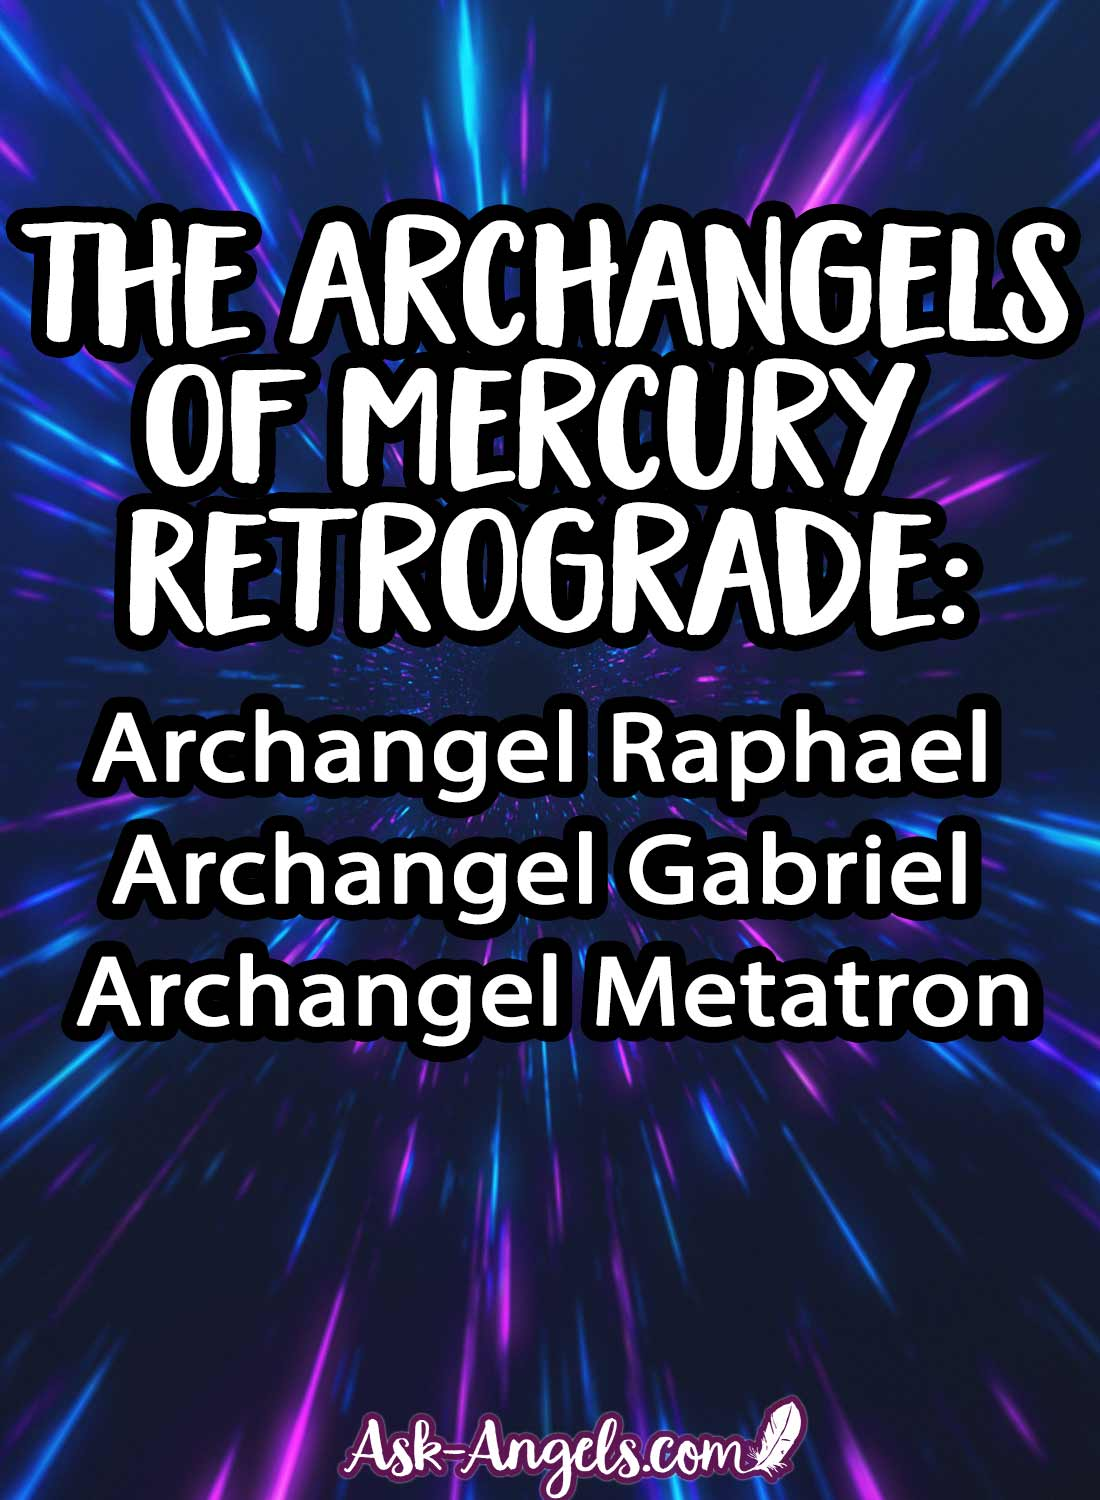 The Archangels of Mercury Retrograde- Raphael, Gabriel, Metatron